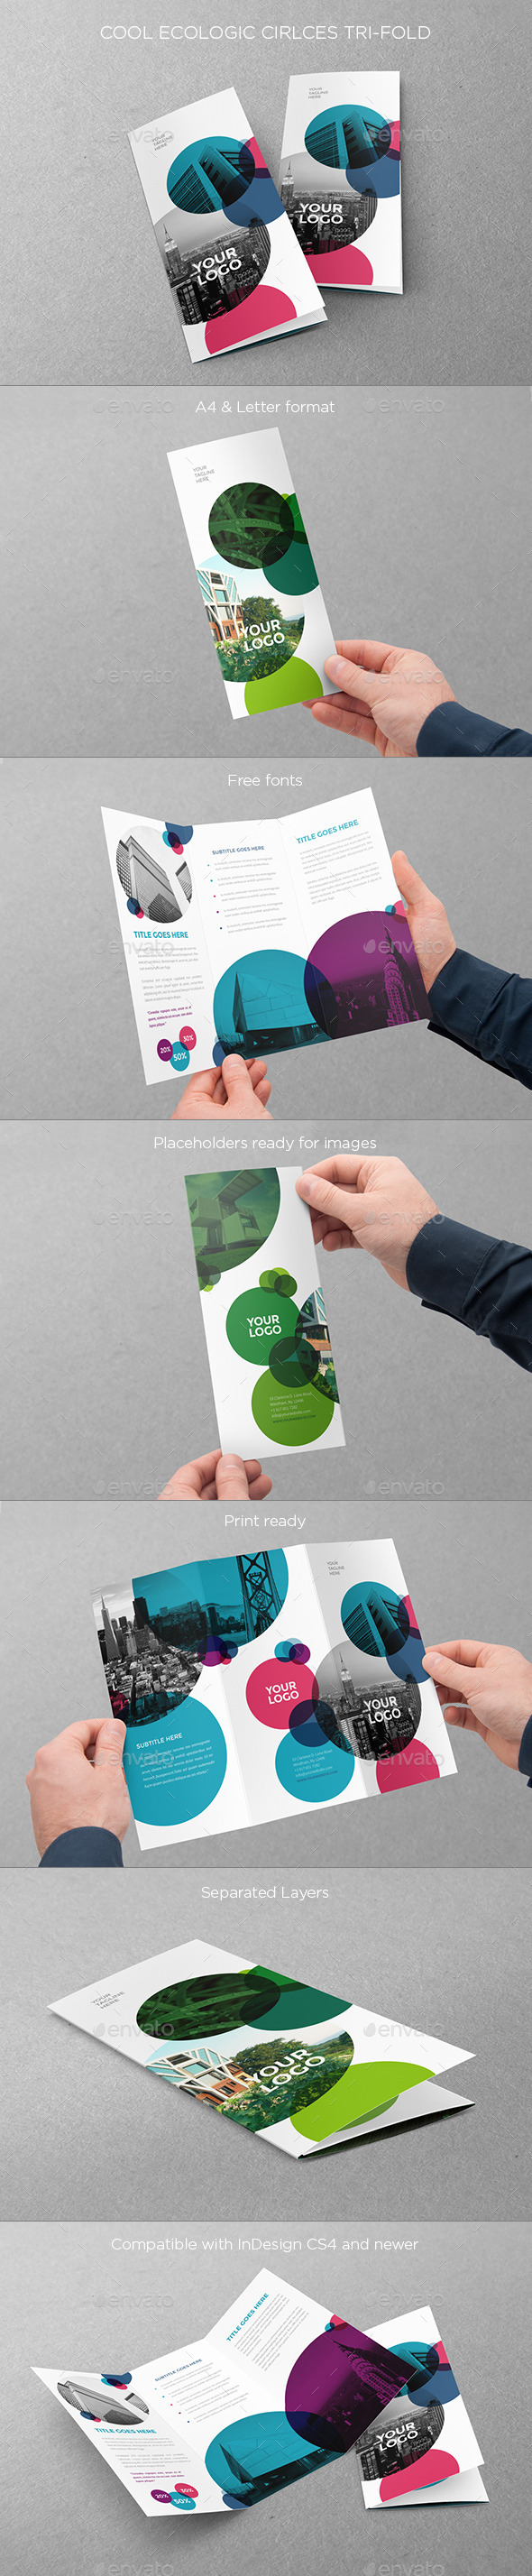 GraphicRiver Cool Ecologic Circles Trifold 10880089